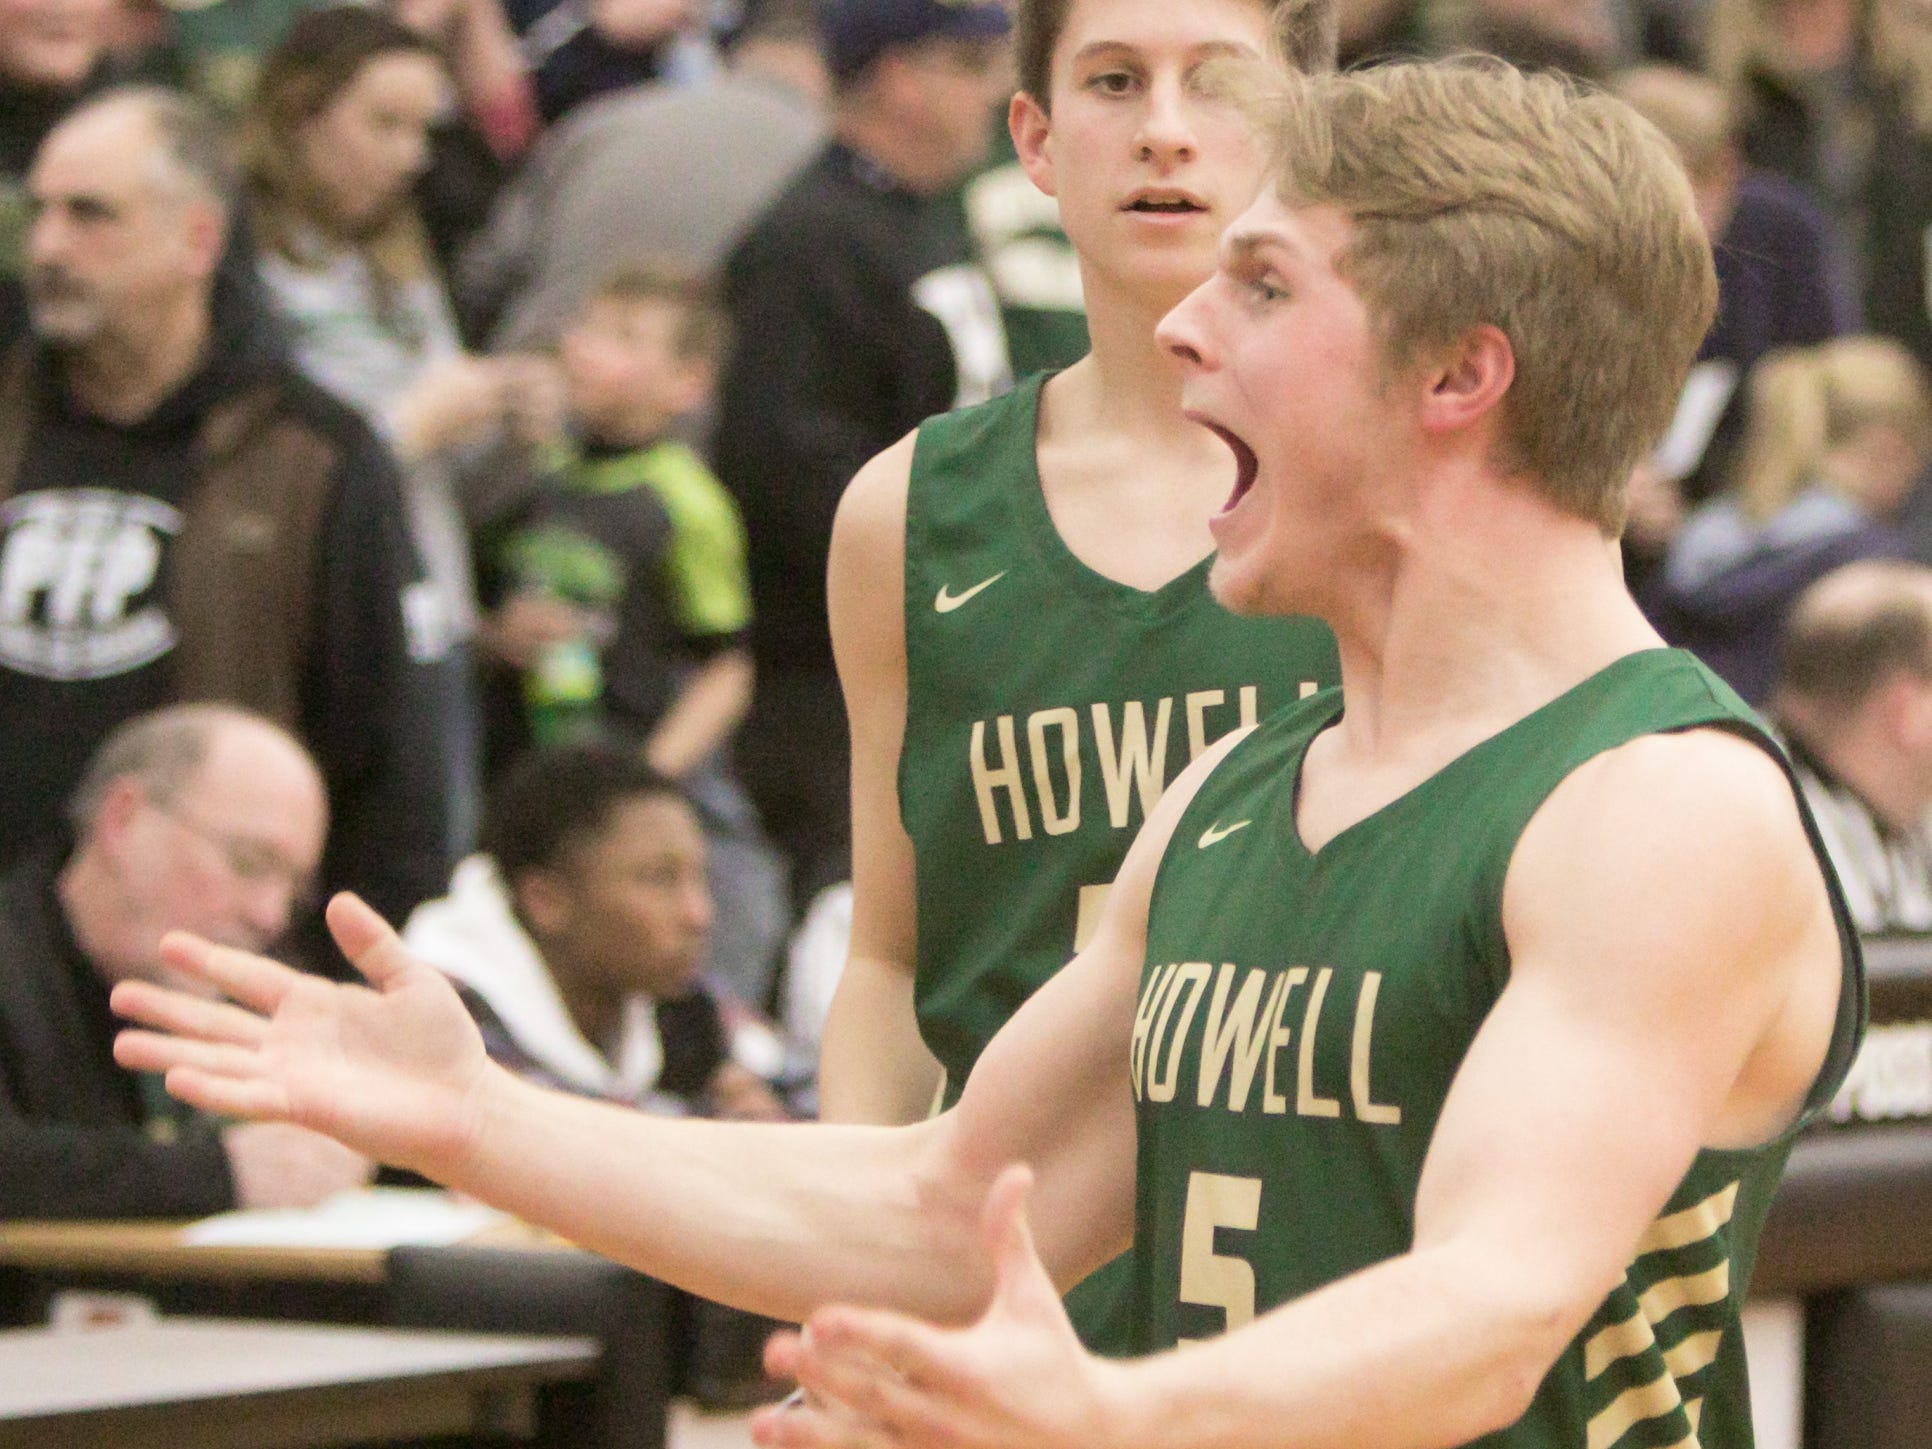 Howell's Peyton Ward (5) celebrates following a 57-56 victory over Saginaw in the state basketball quarterfinals at Grand Blanc on Tuesday, March 12, 2019.